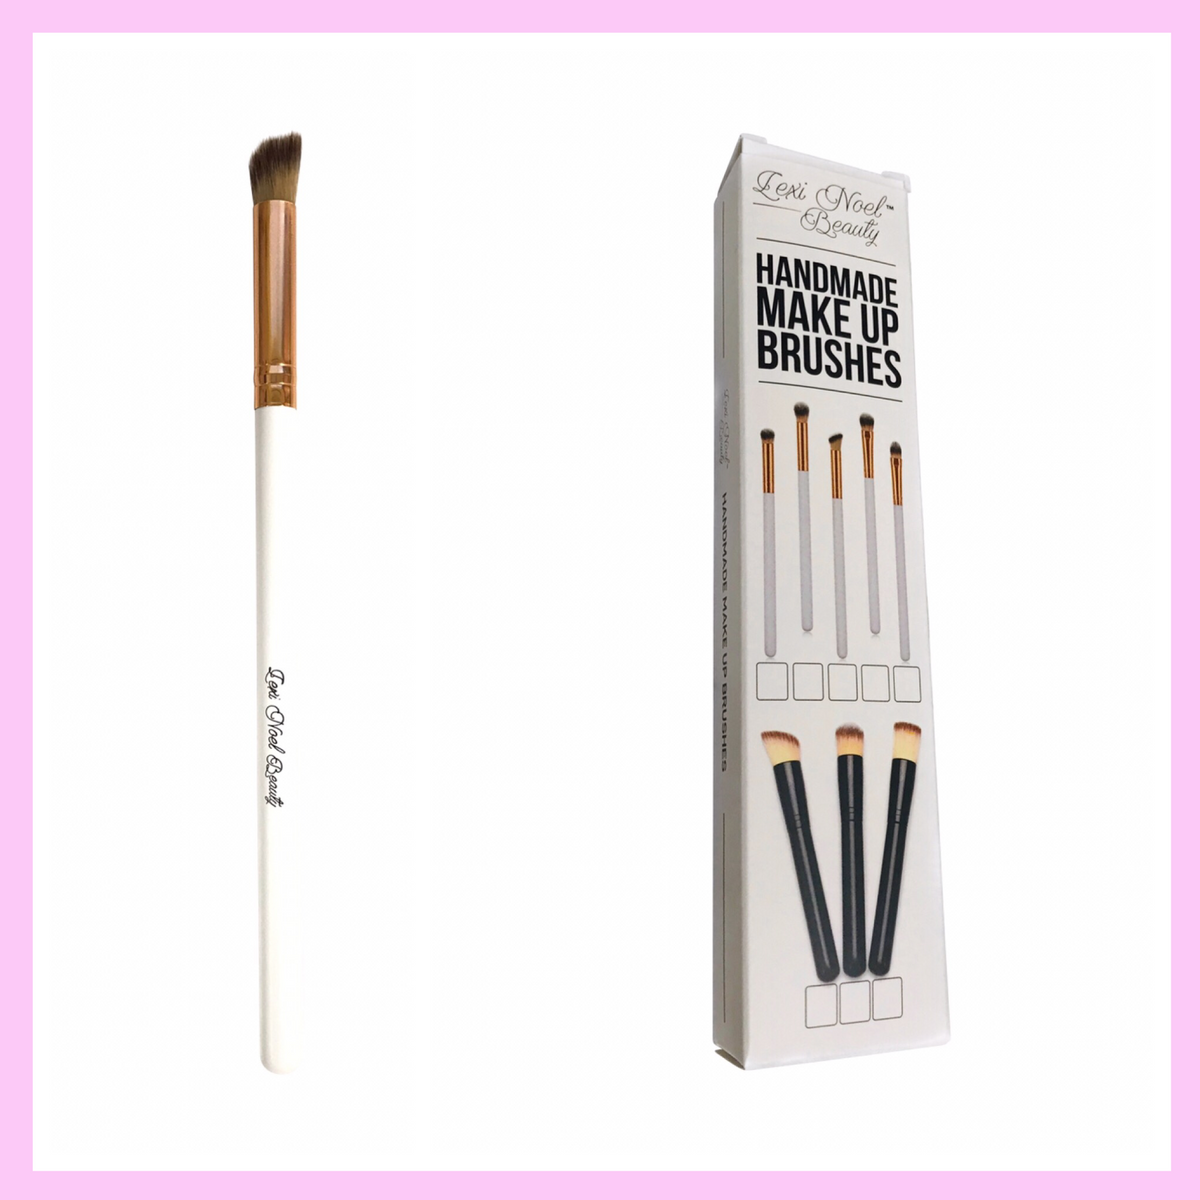 Eye Contour Makeup Brush Lexi Noel Beauty - lexinoelbeauty.com